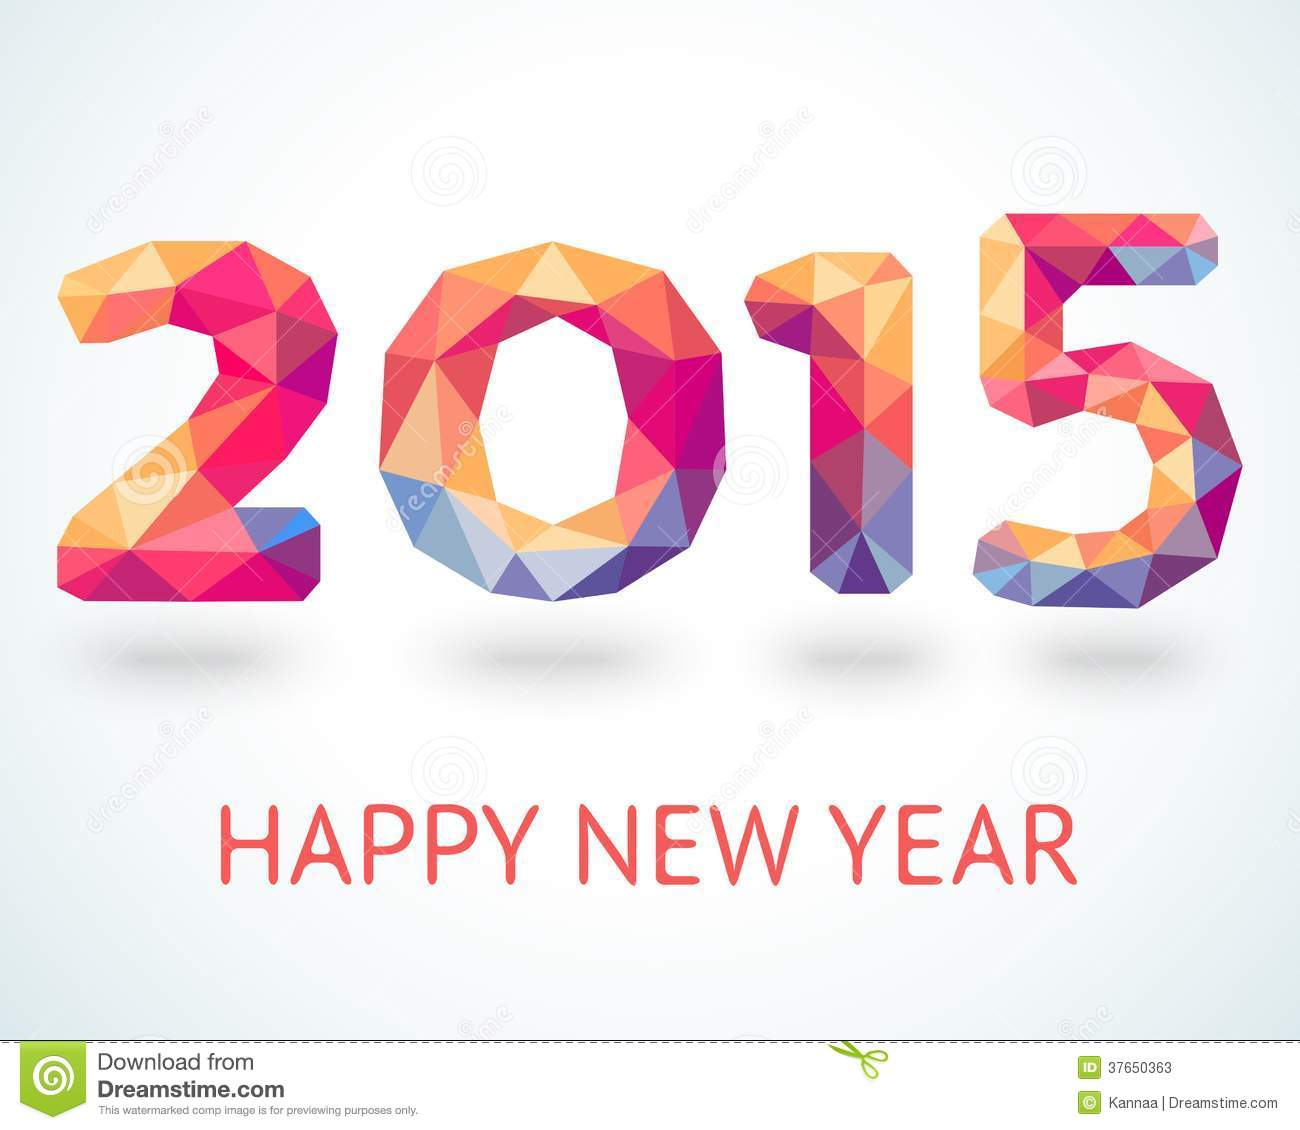 Happy new year 2015 colorful greeting card stock vector happy new year 2015 colorful greeting card m4hsunfo